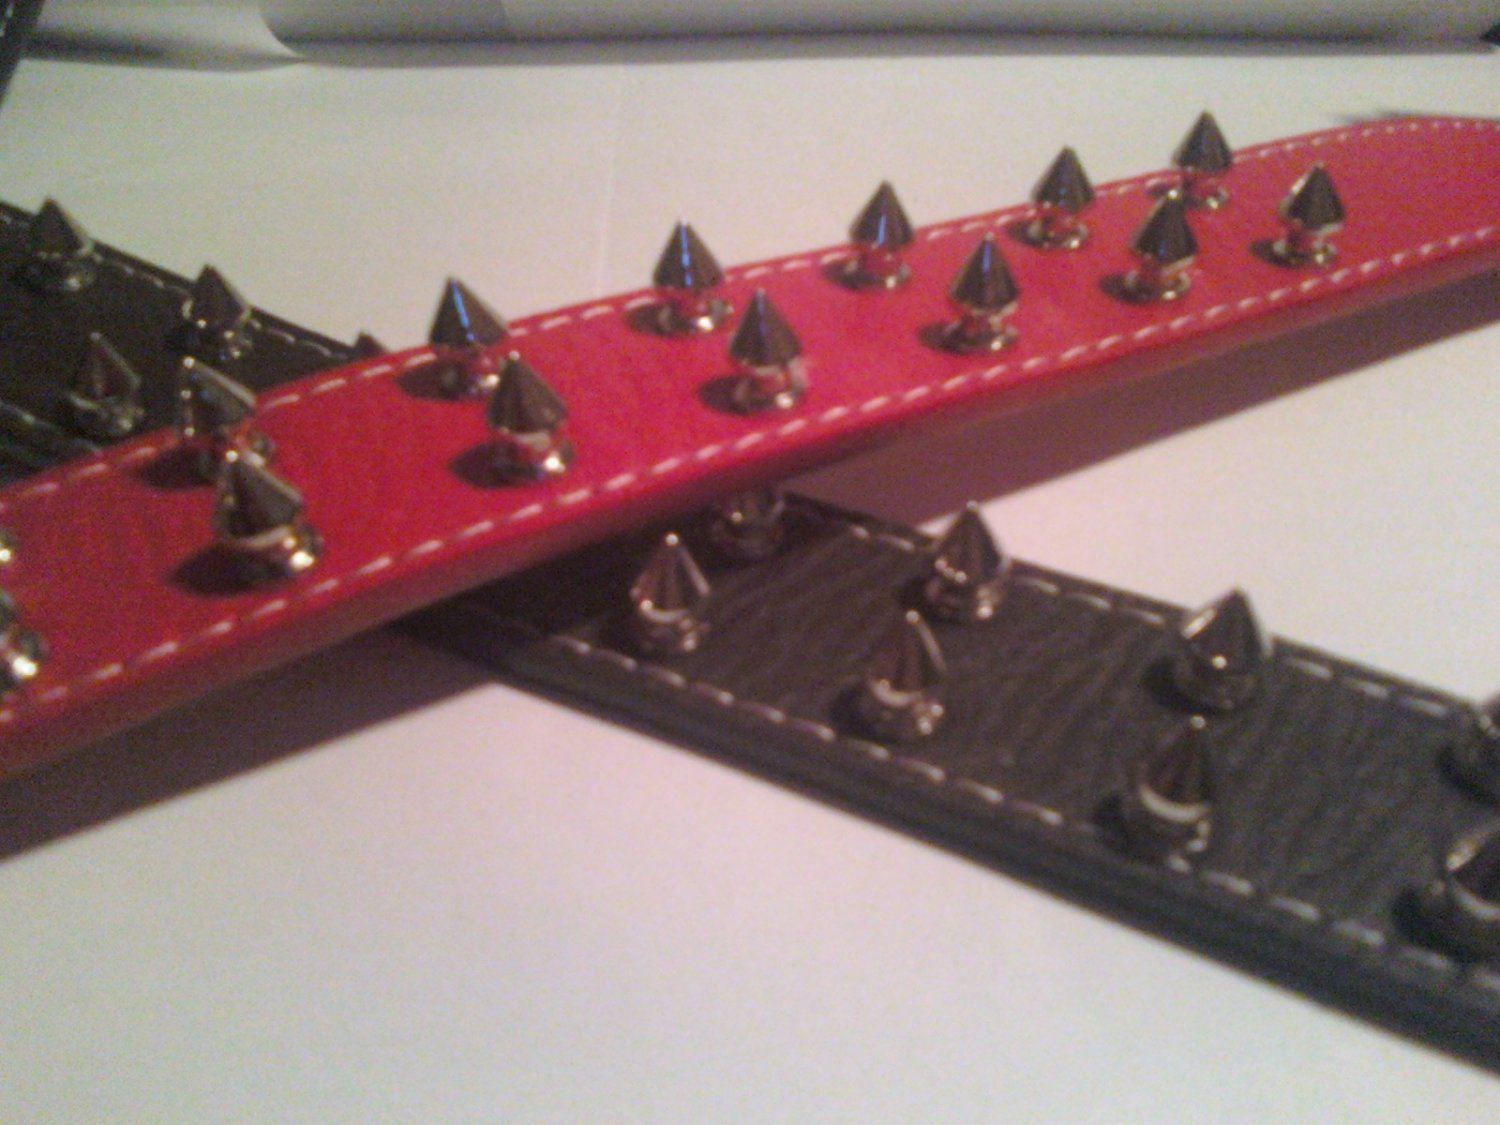 Large Dog Spike Collar (24 inches, Red)